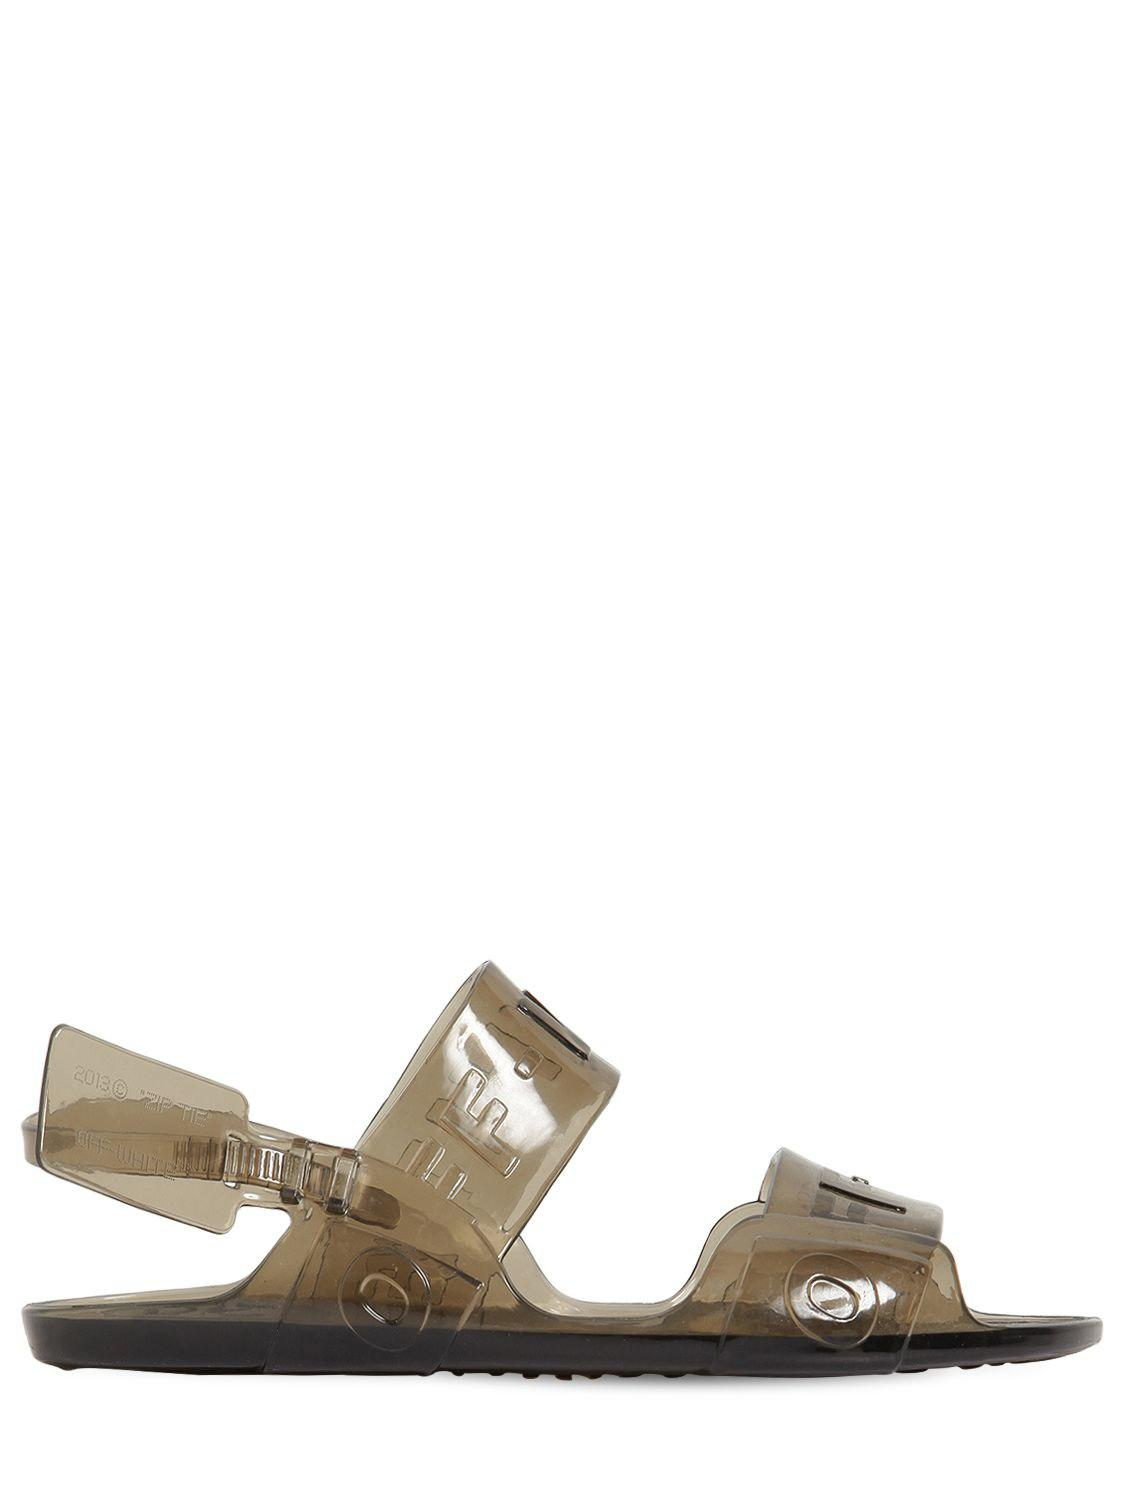 baa6ec66499 Lyst - Off-White c o Virgil Abloh Zip Tie Jelly Sandals Black in ...